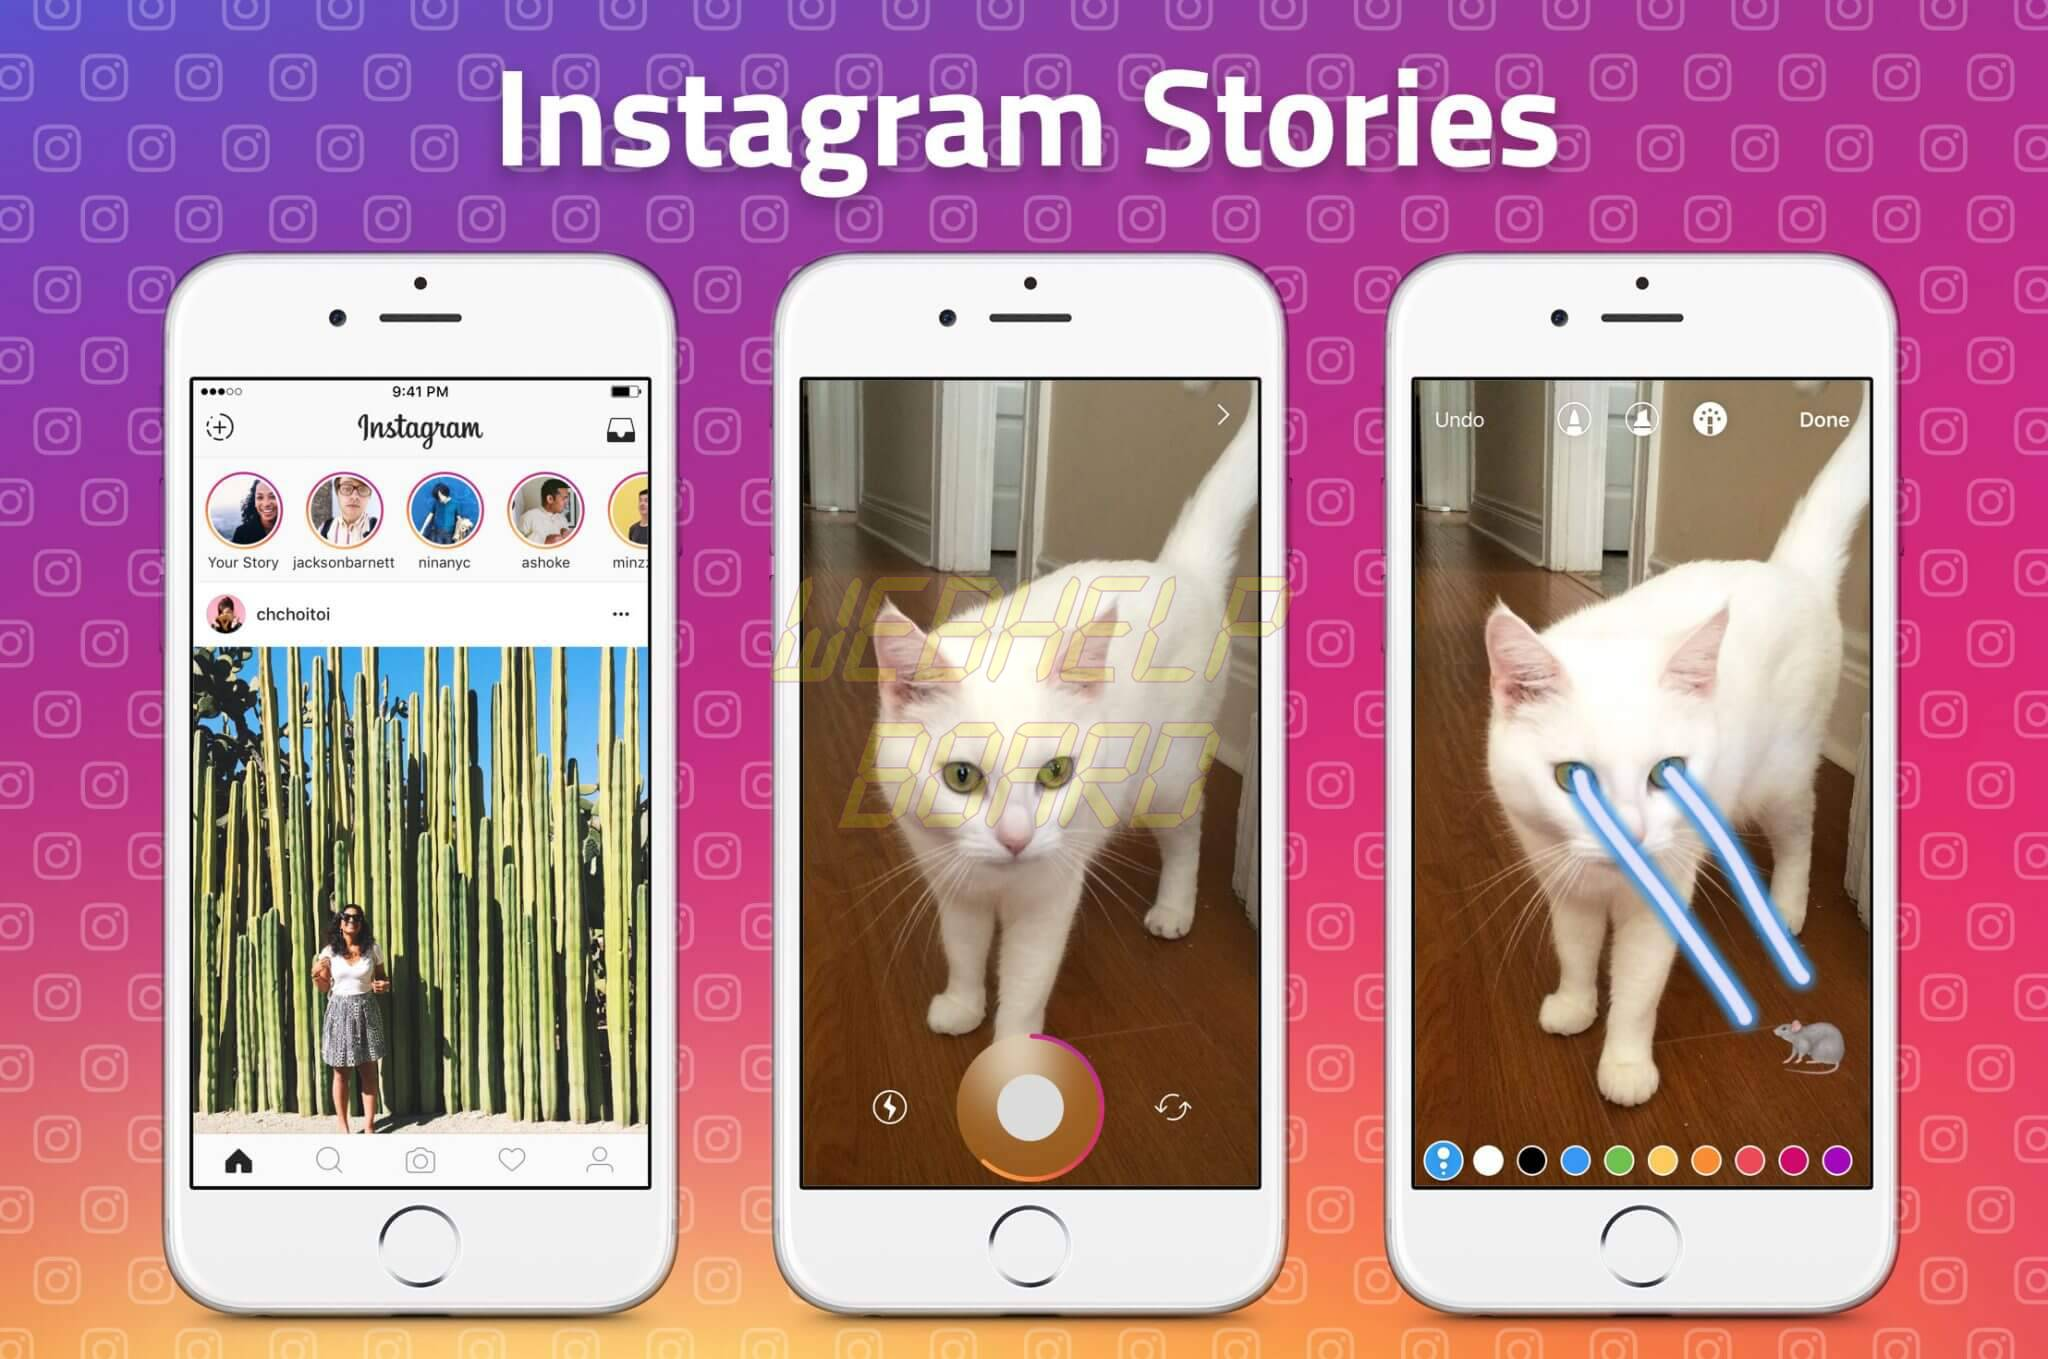 instagram stories1 - Como compartilhar a foto no Instagram Stories e WhatsApp Status ao mesmo tempo